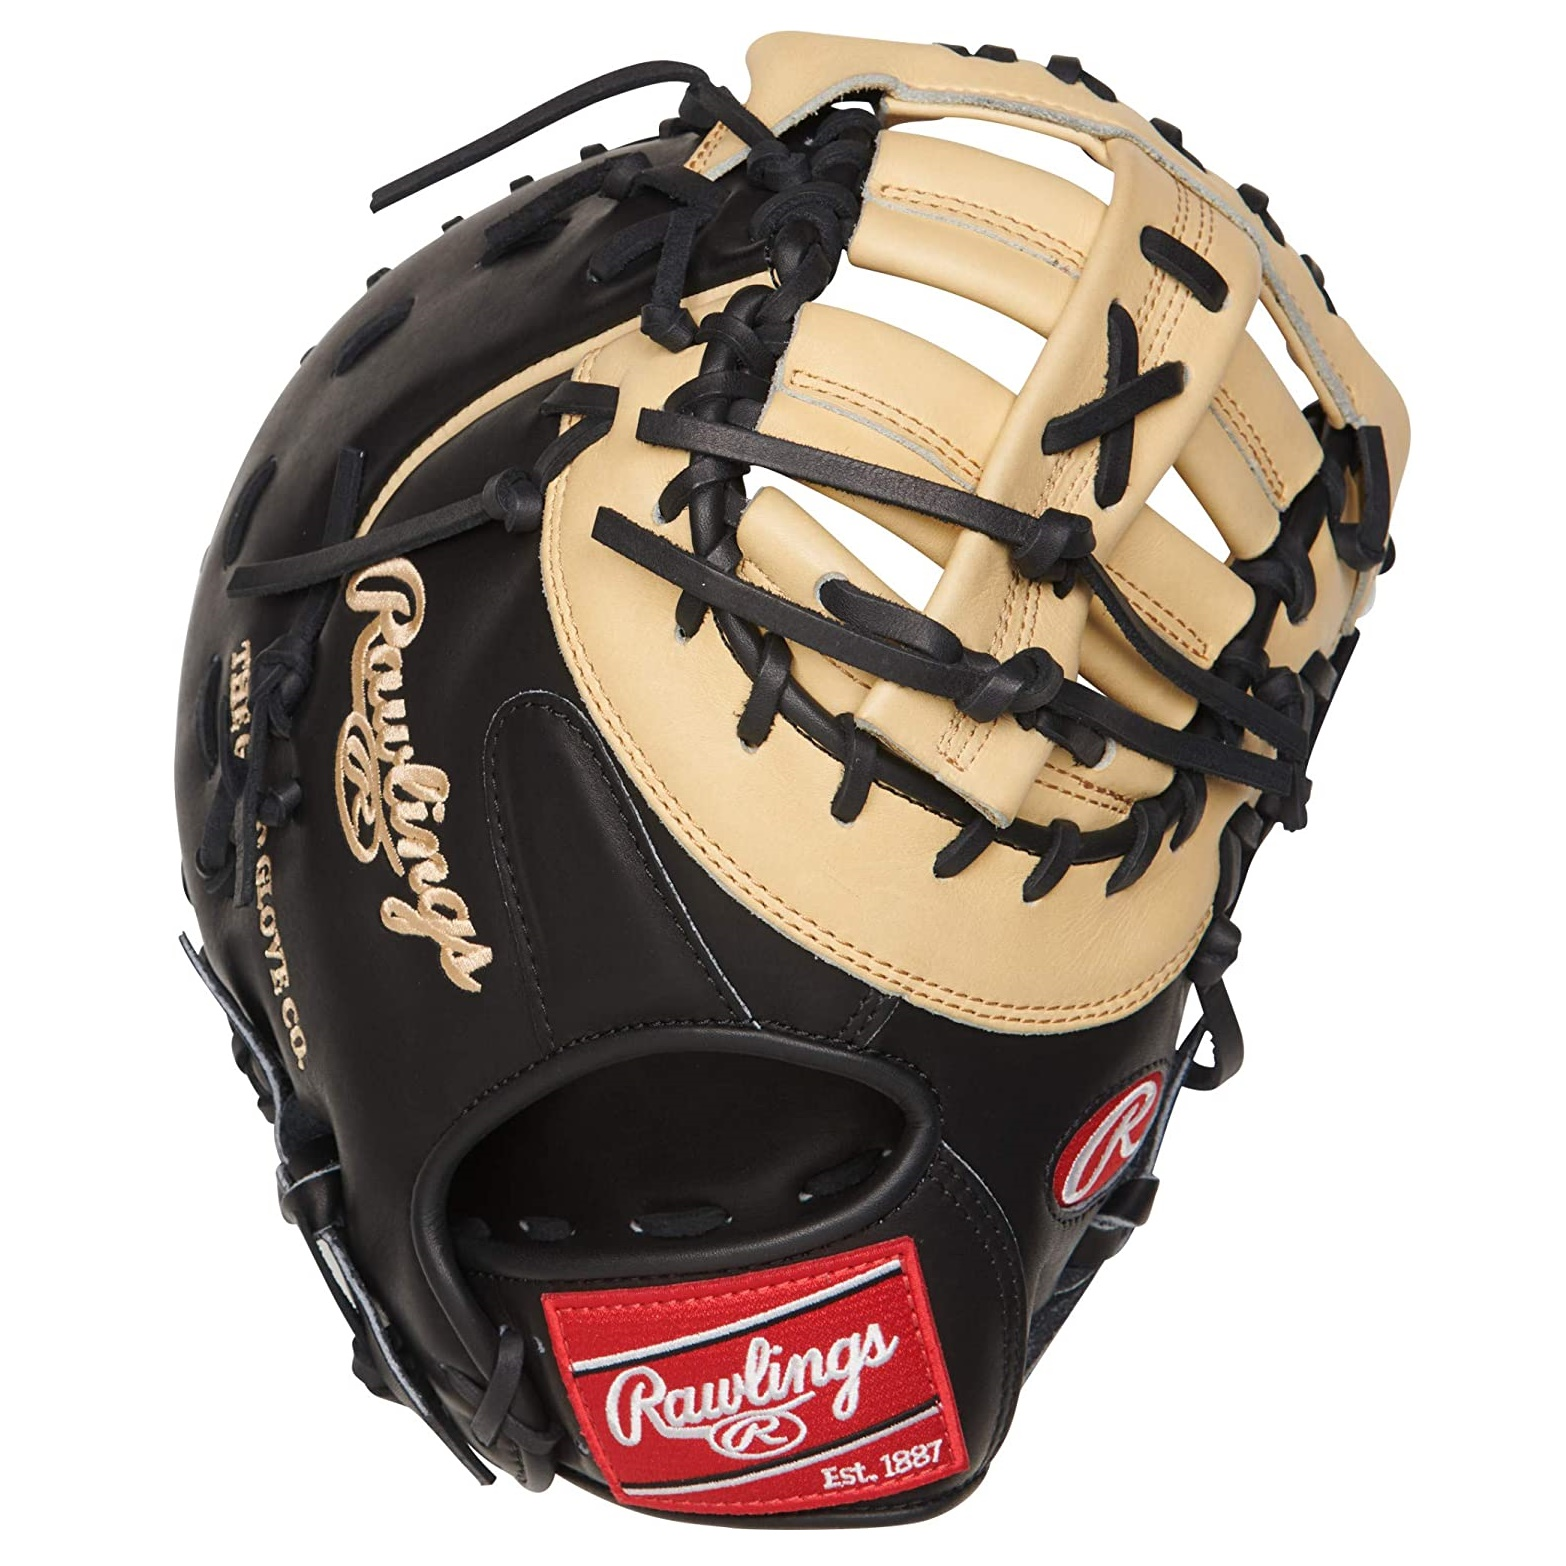 rawlings-heart-of-the-hide-first-base-baseball-glove-camel-black-13-inch-right-hand-throw PRODCTCB-RightHandThrow   The Rawlings 13-inch Heart of the Hide first base glove is